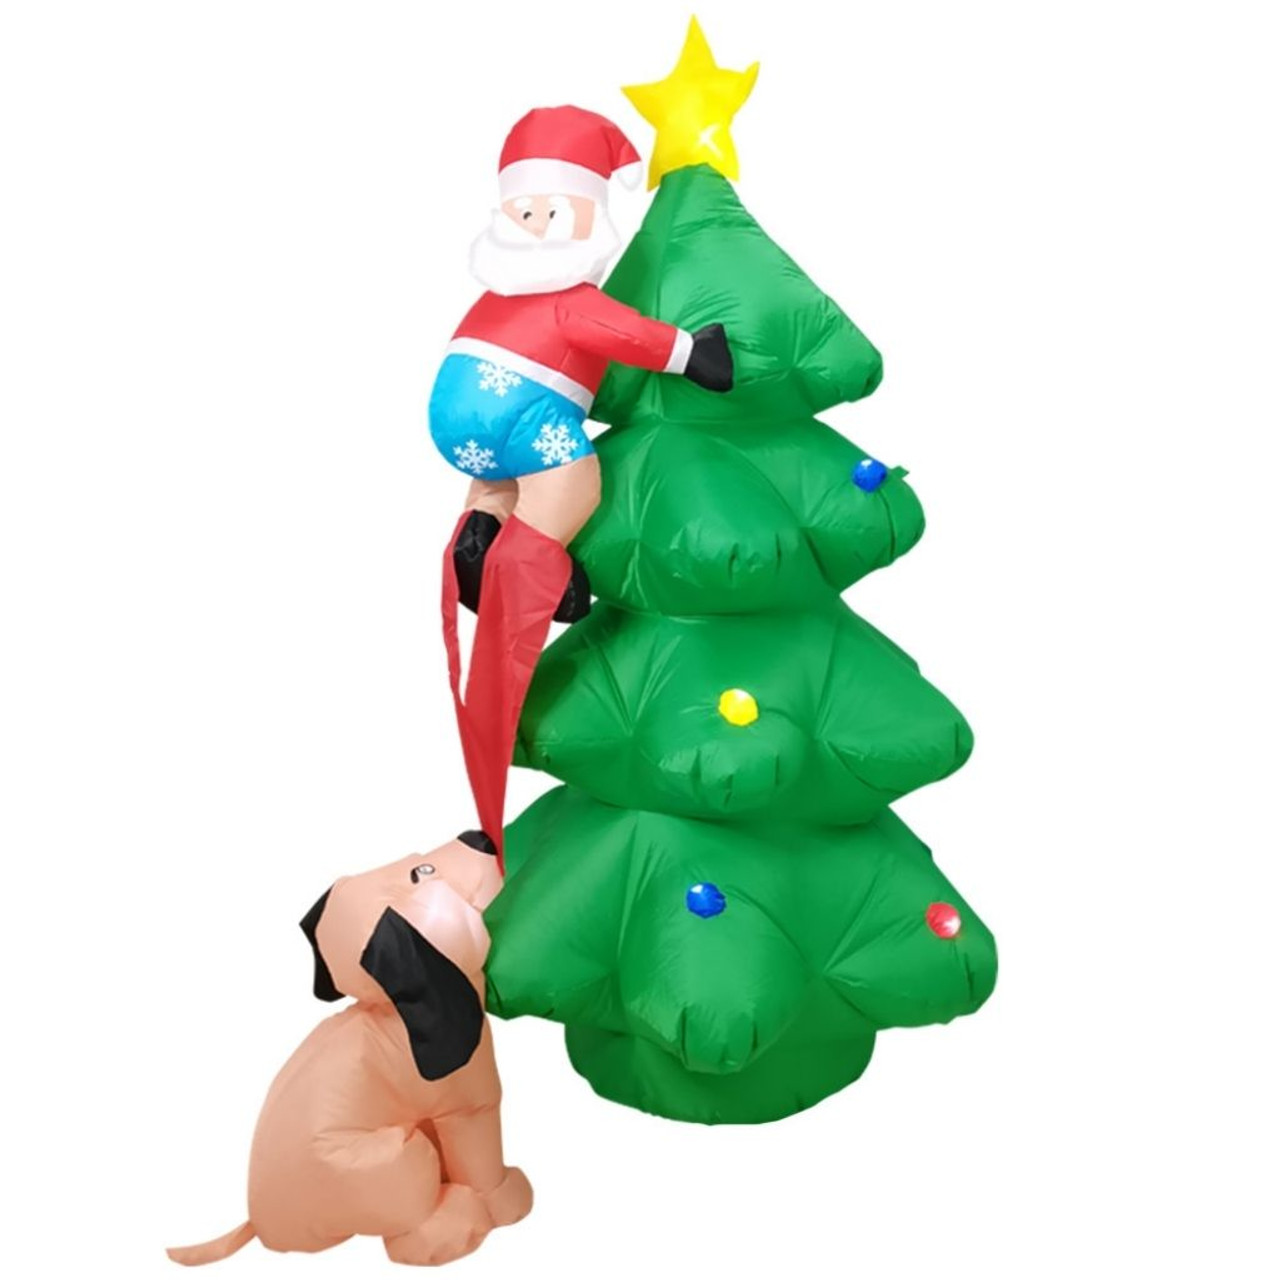 7-Foot LED-Lit Inflatable Christmas Tree with Santa Décor! .99 (REG 9.99) + Free Shipping at Until Gone!